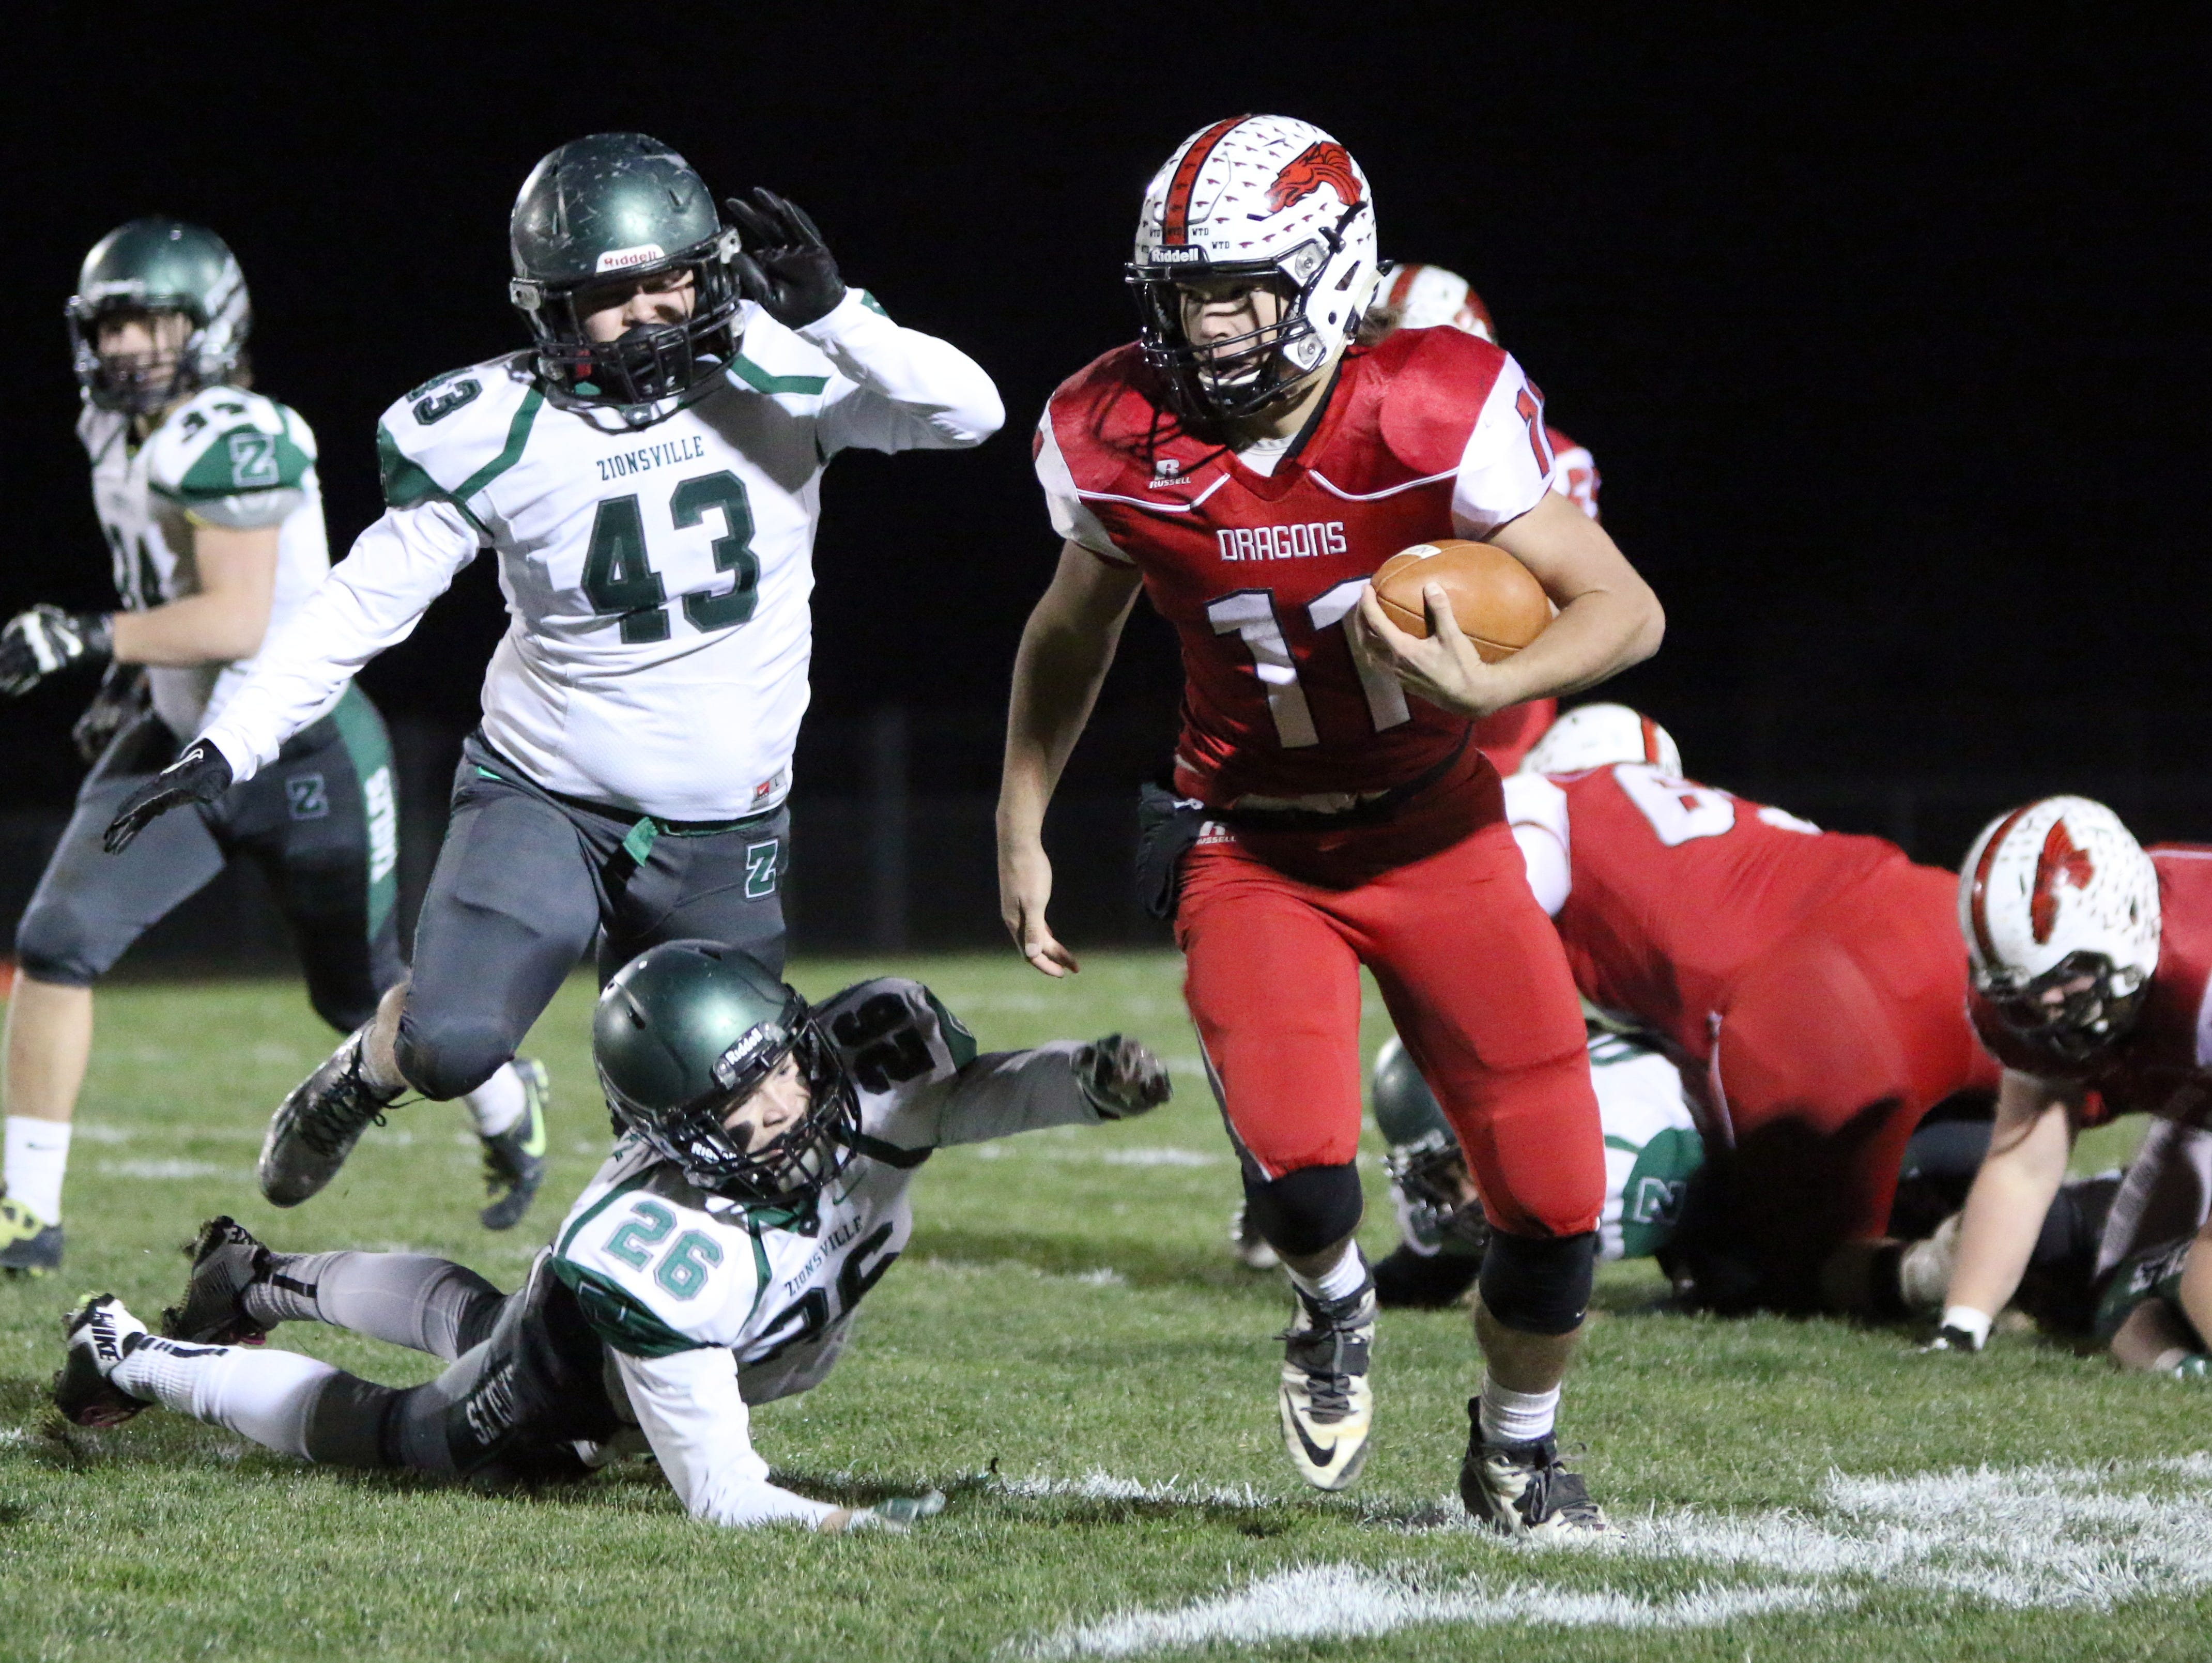 Record-setting QB Alex Neligh is a leading candidate for IndyStar Mr. Football.